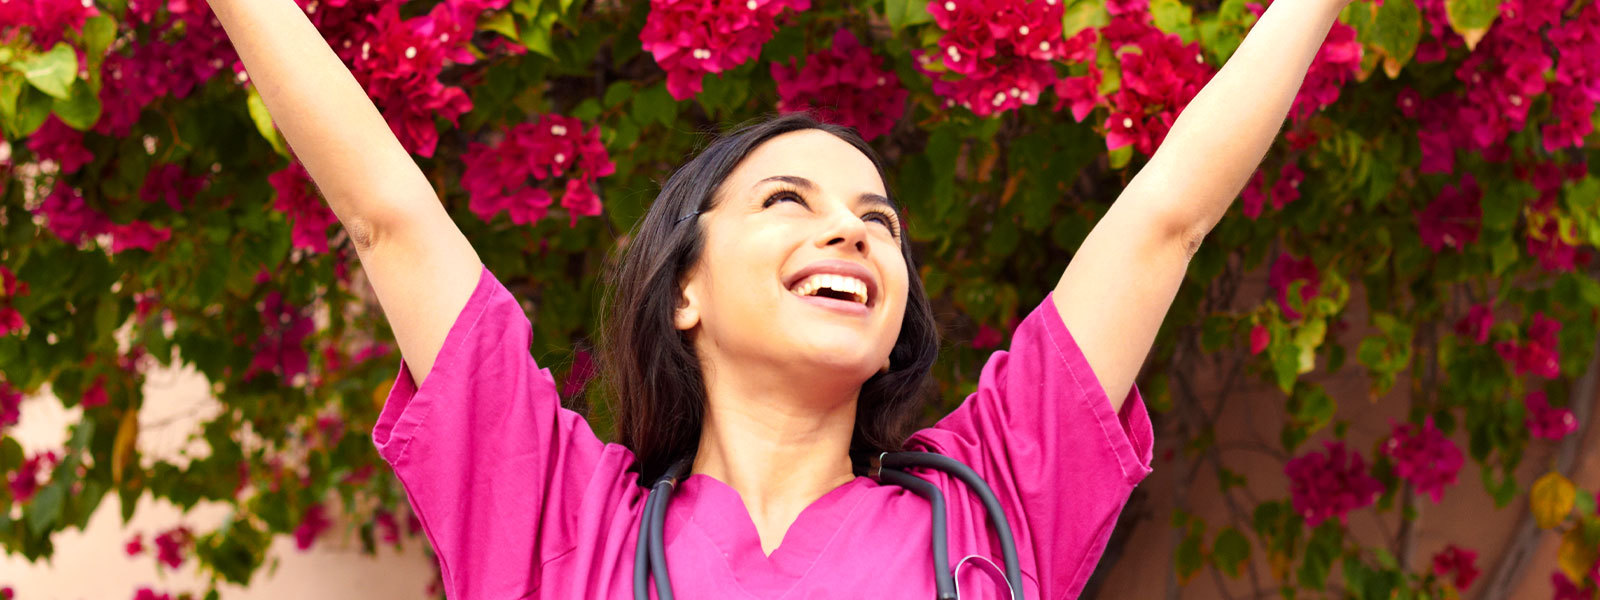 Nursing smiling, wearing bright pink scrubs as she stands in front of flowers.